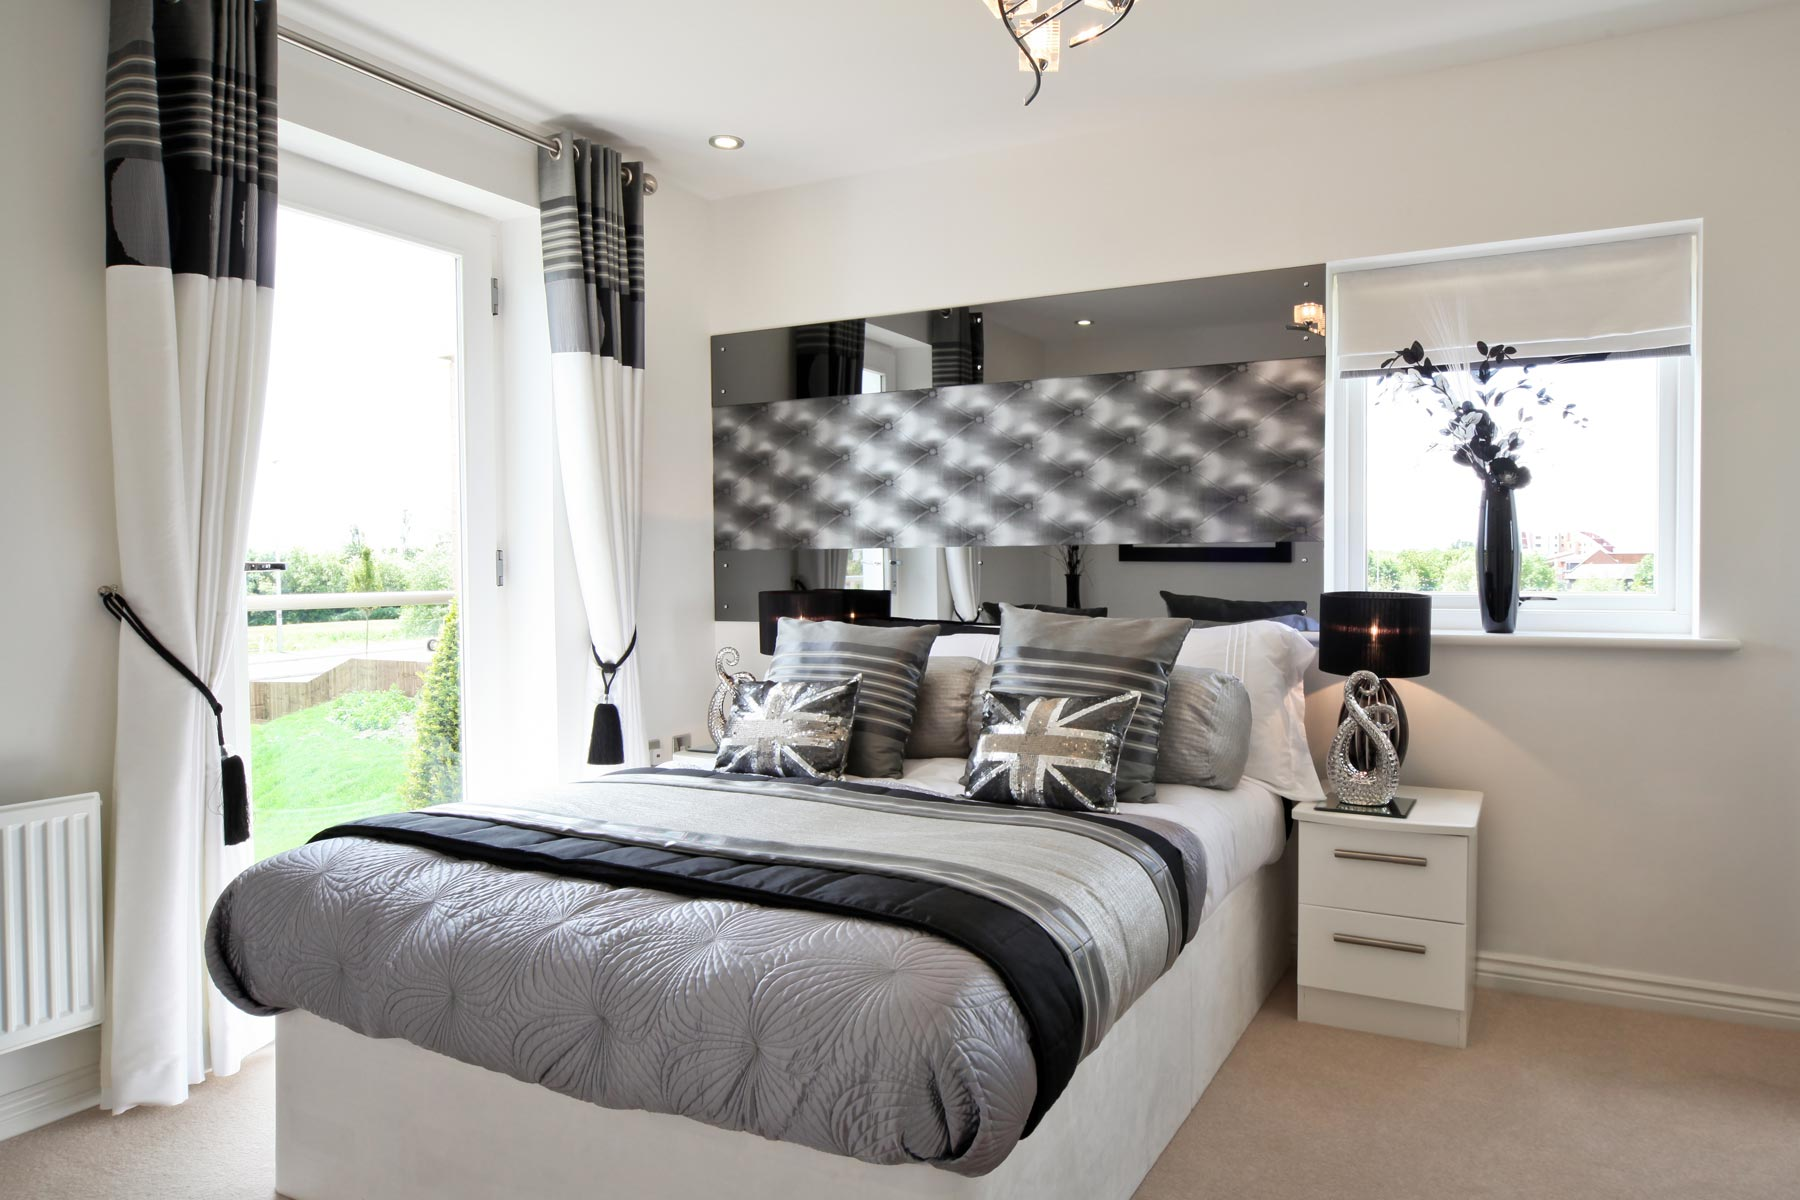 Photo of the master bedroom from the Kirkstone show home at Kingston Chase